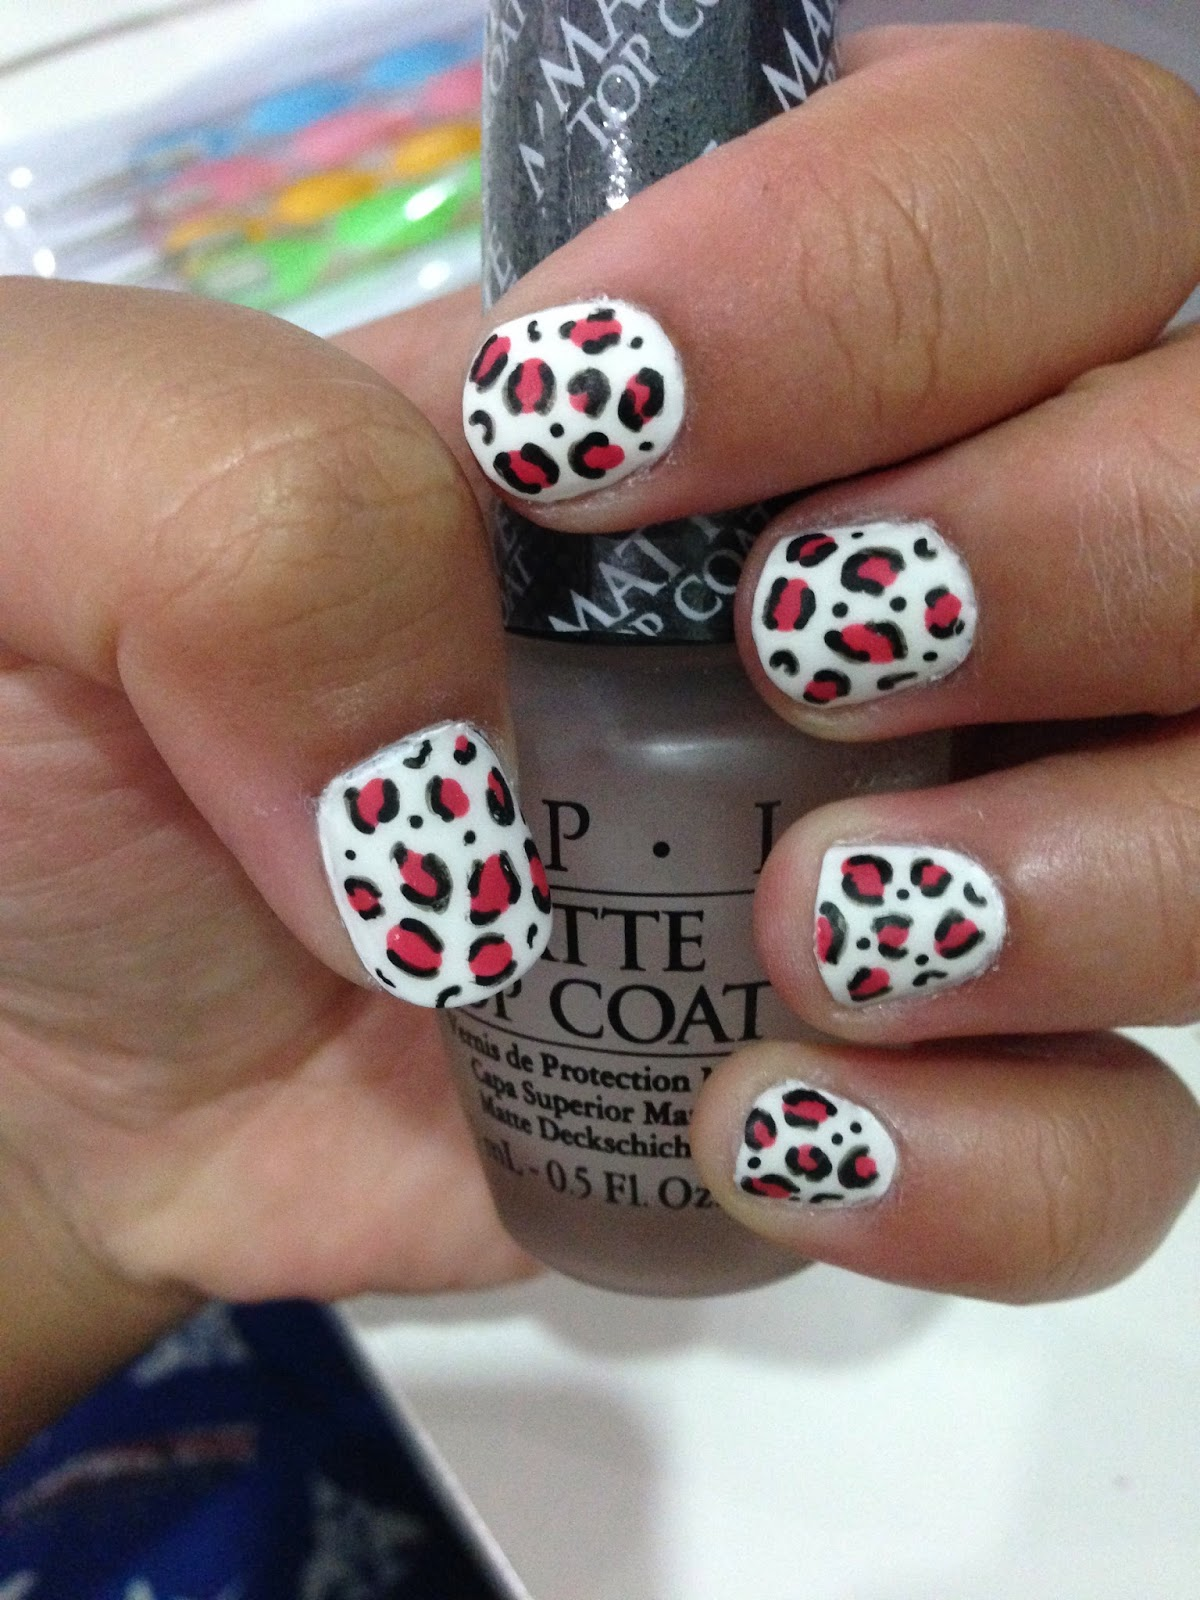 OPI matte top coat on abstract leopard print design